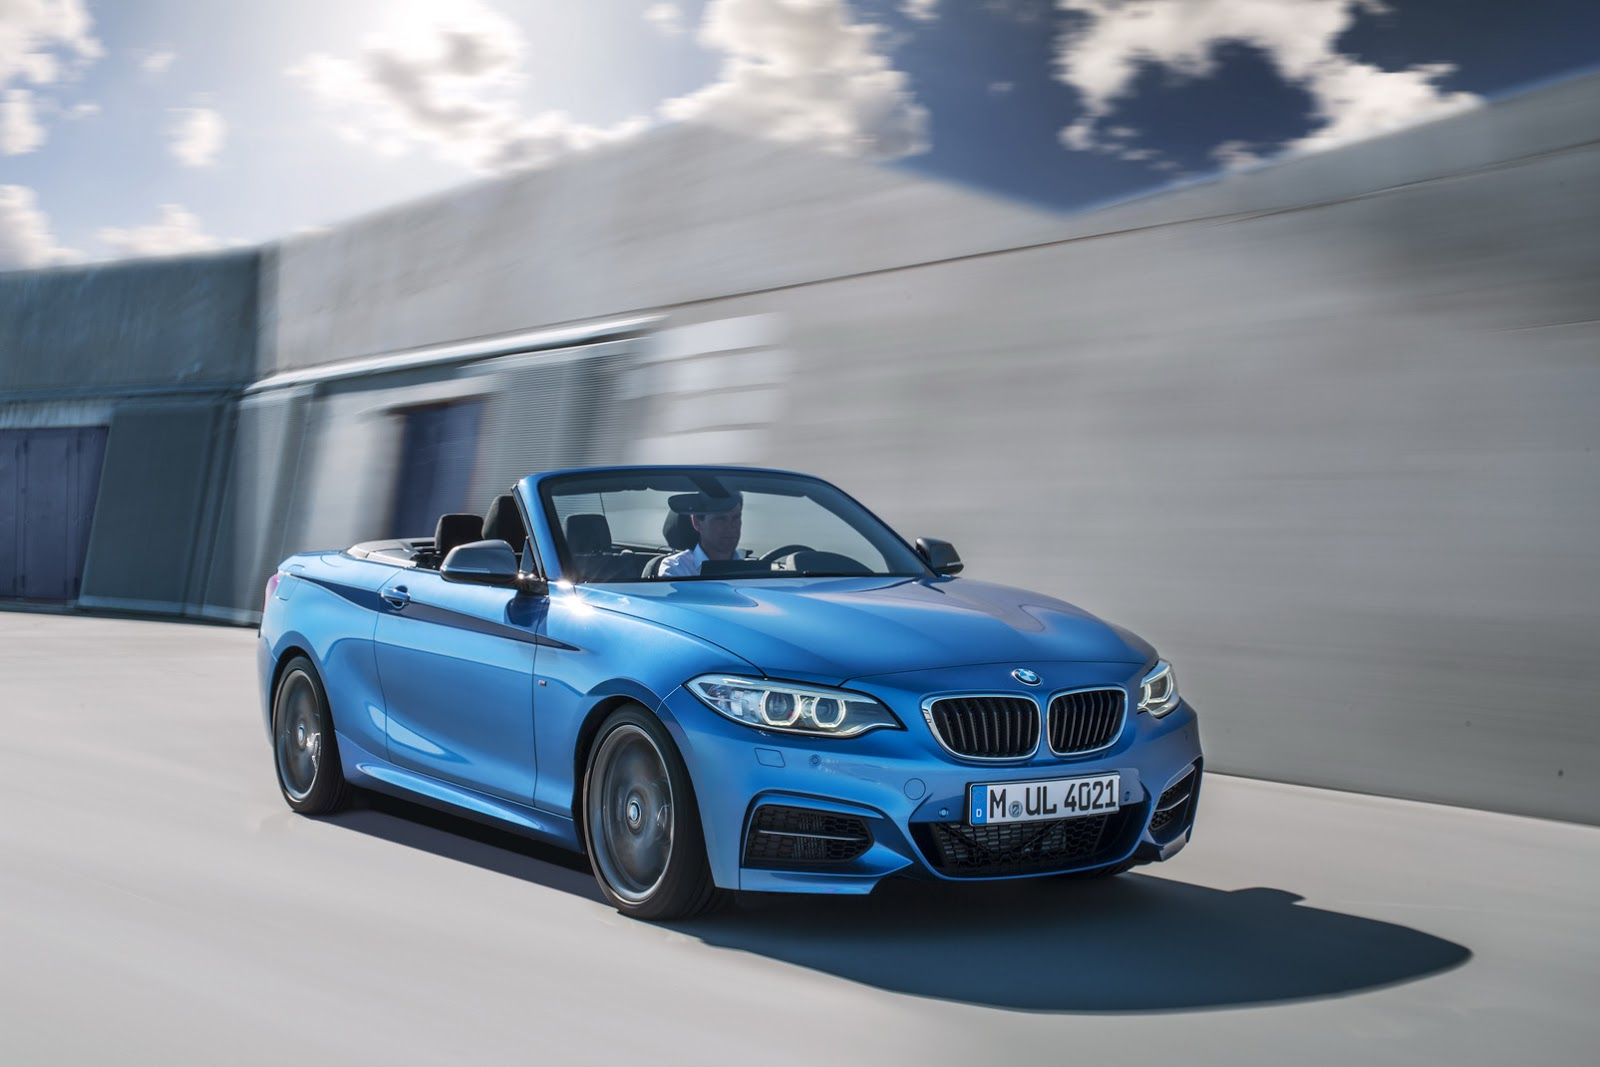 bmw 2 series convertible revealed autocar india. Black Bedroom Furniture Sets. Home Design Ideas